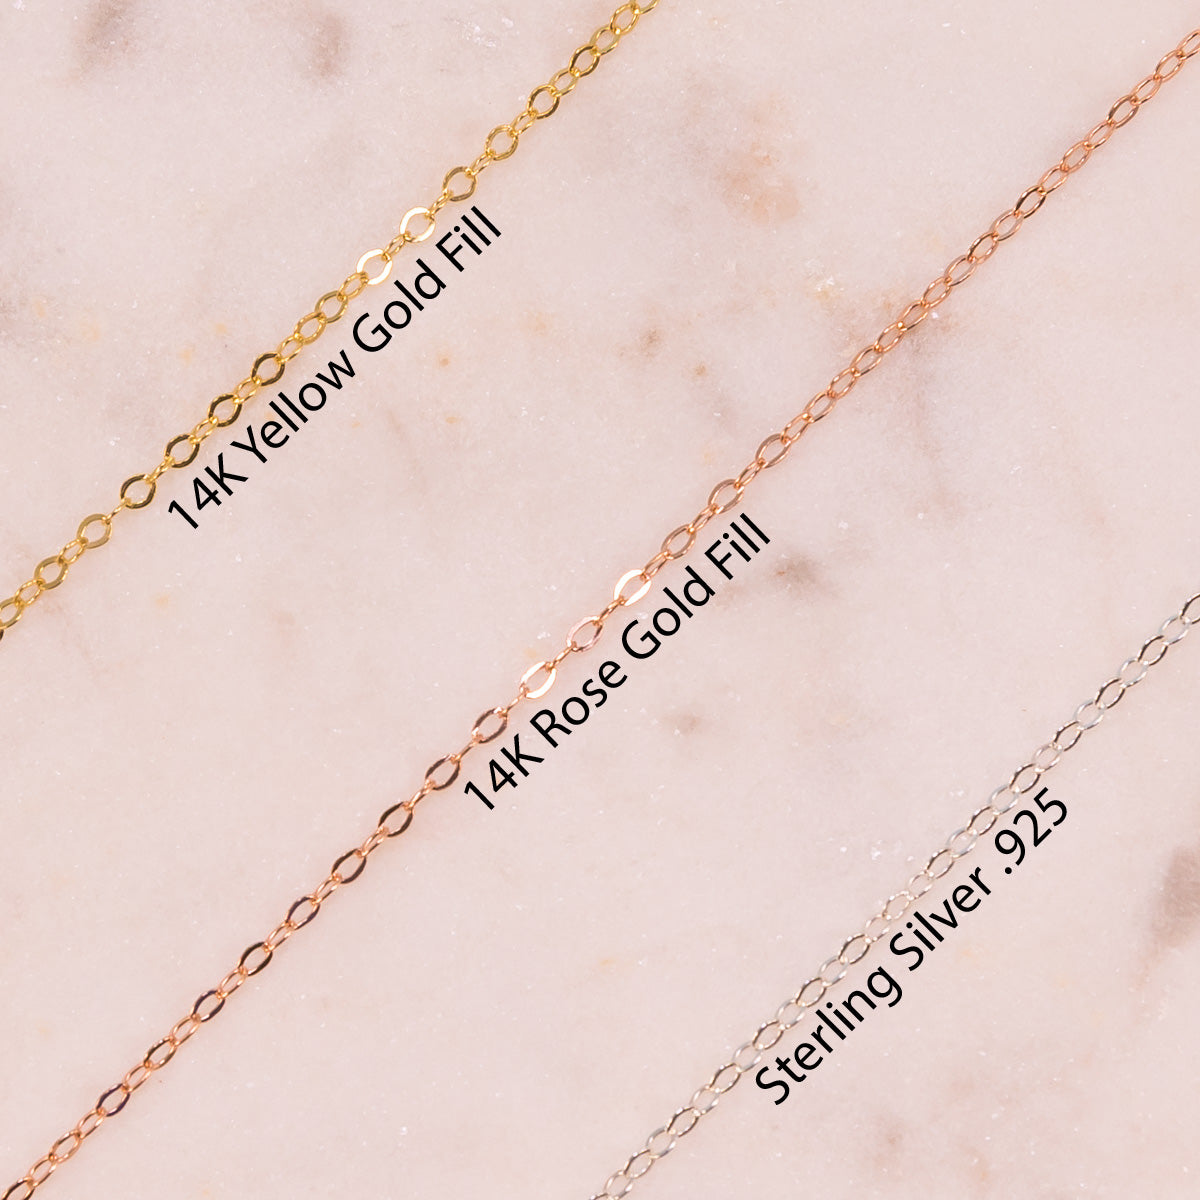 Gold Fill Chain, Rose Gold Fill Chain, Sterling Silver Chain Comparison